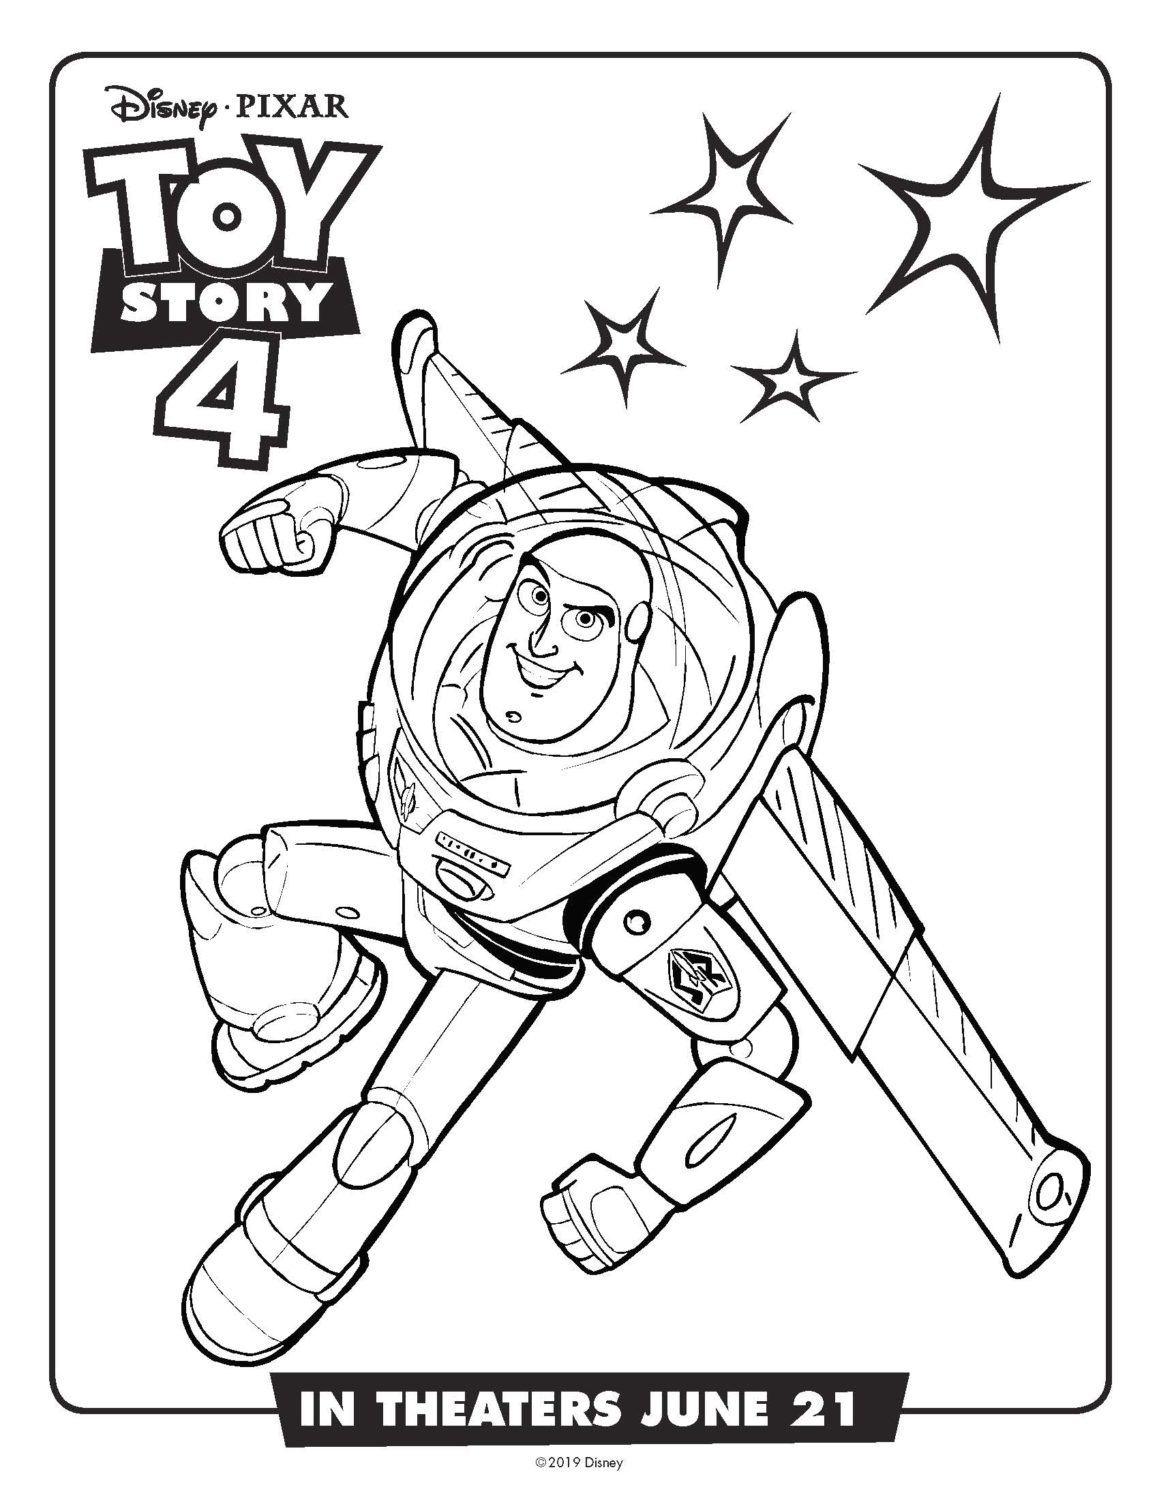 Free Printable Toy Story 4 Coloring Pages And Activity